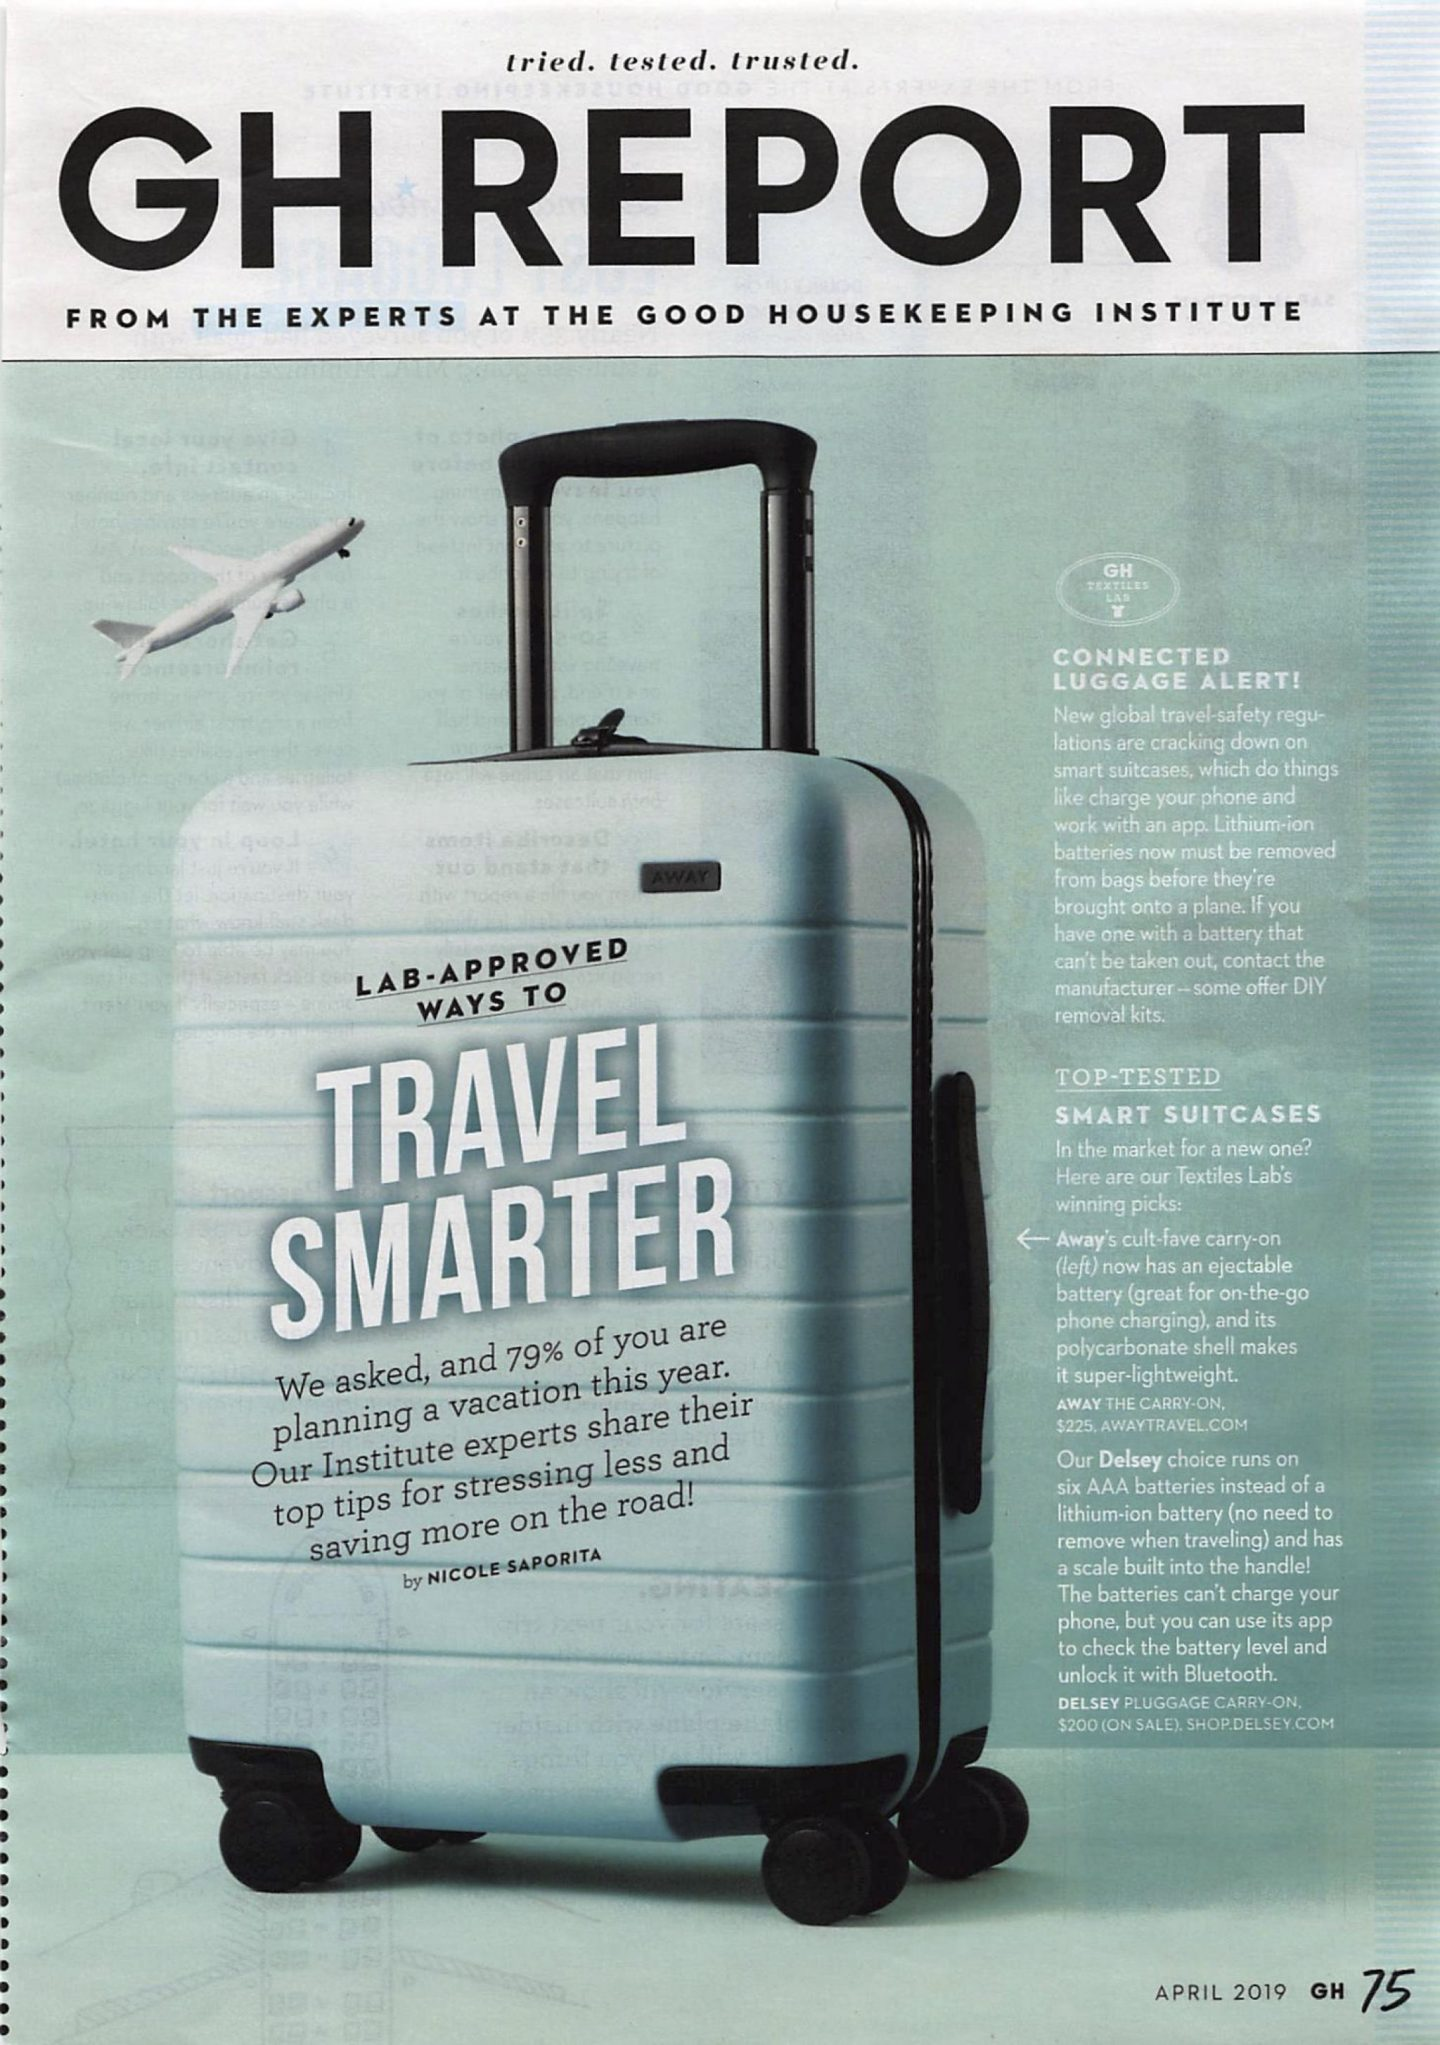 Good Housekeeping Report on Smart Travel